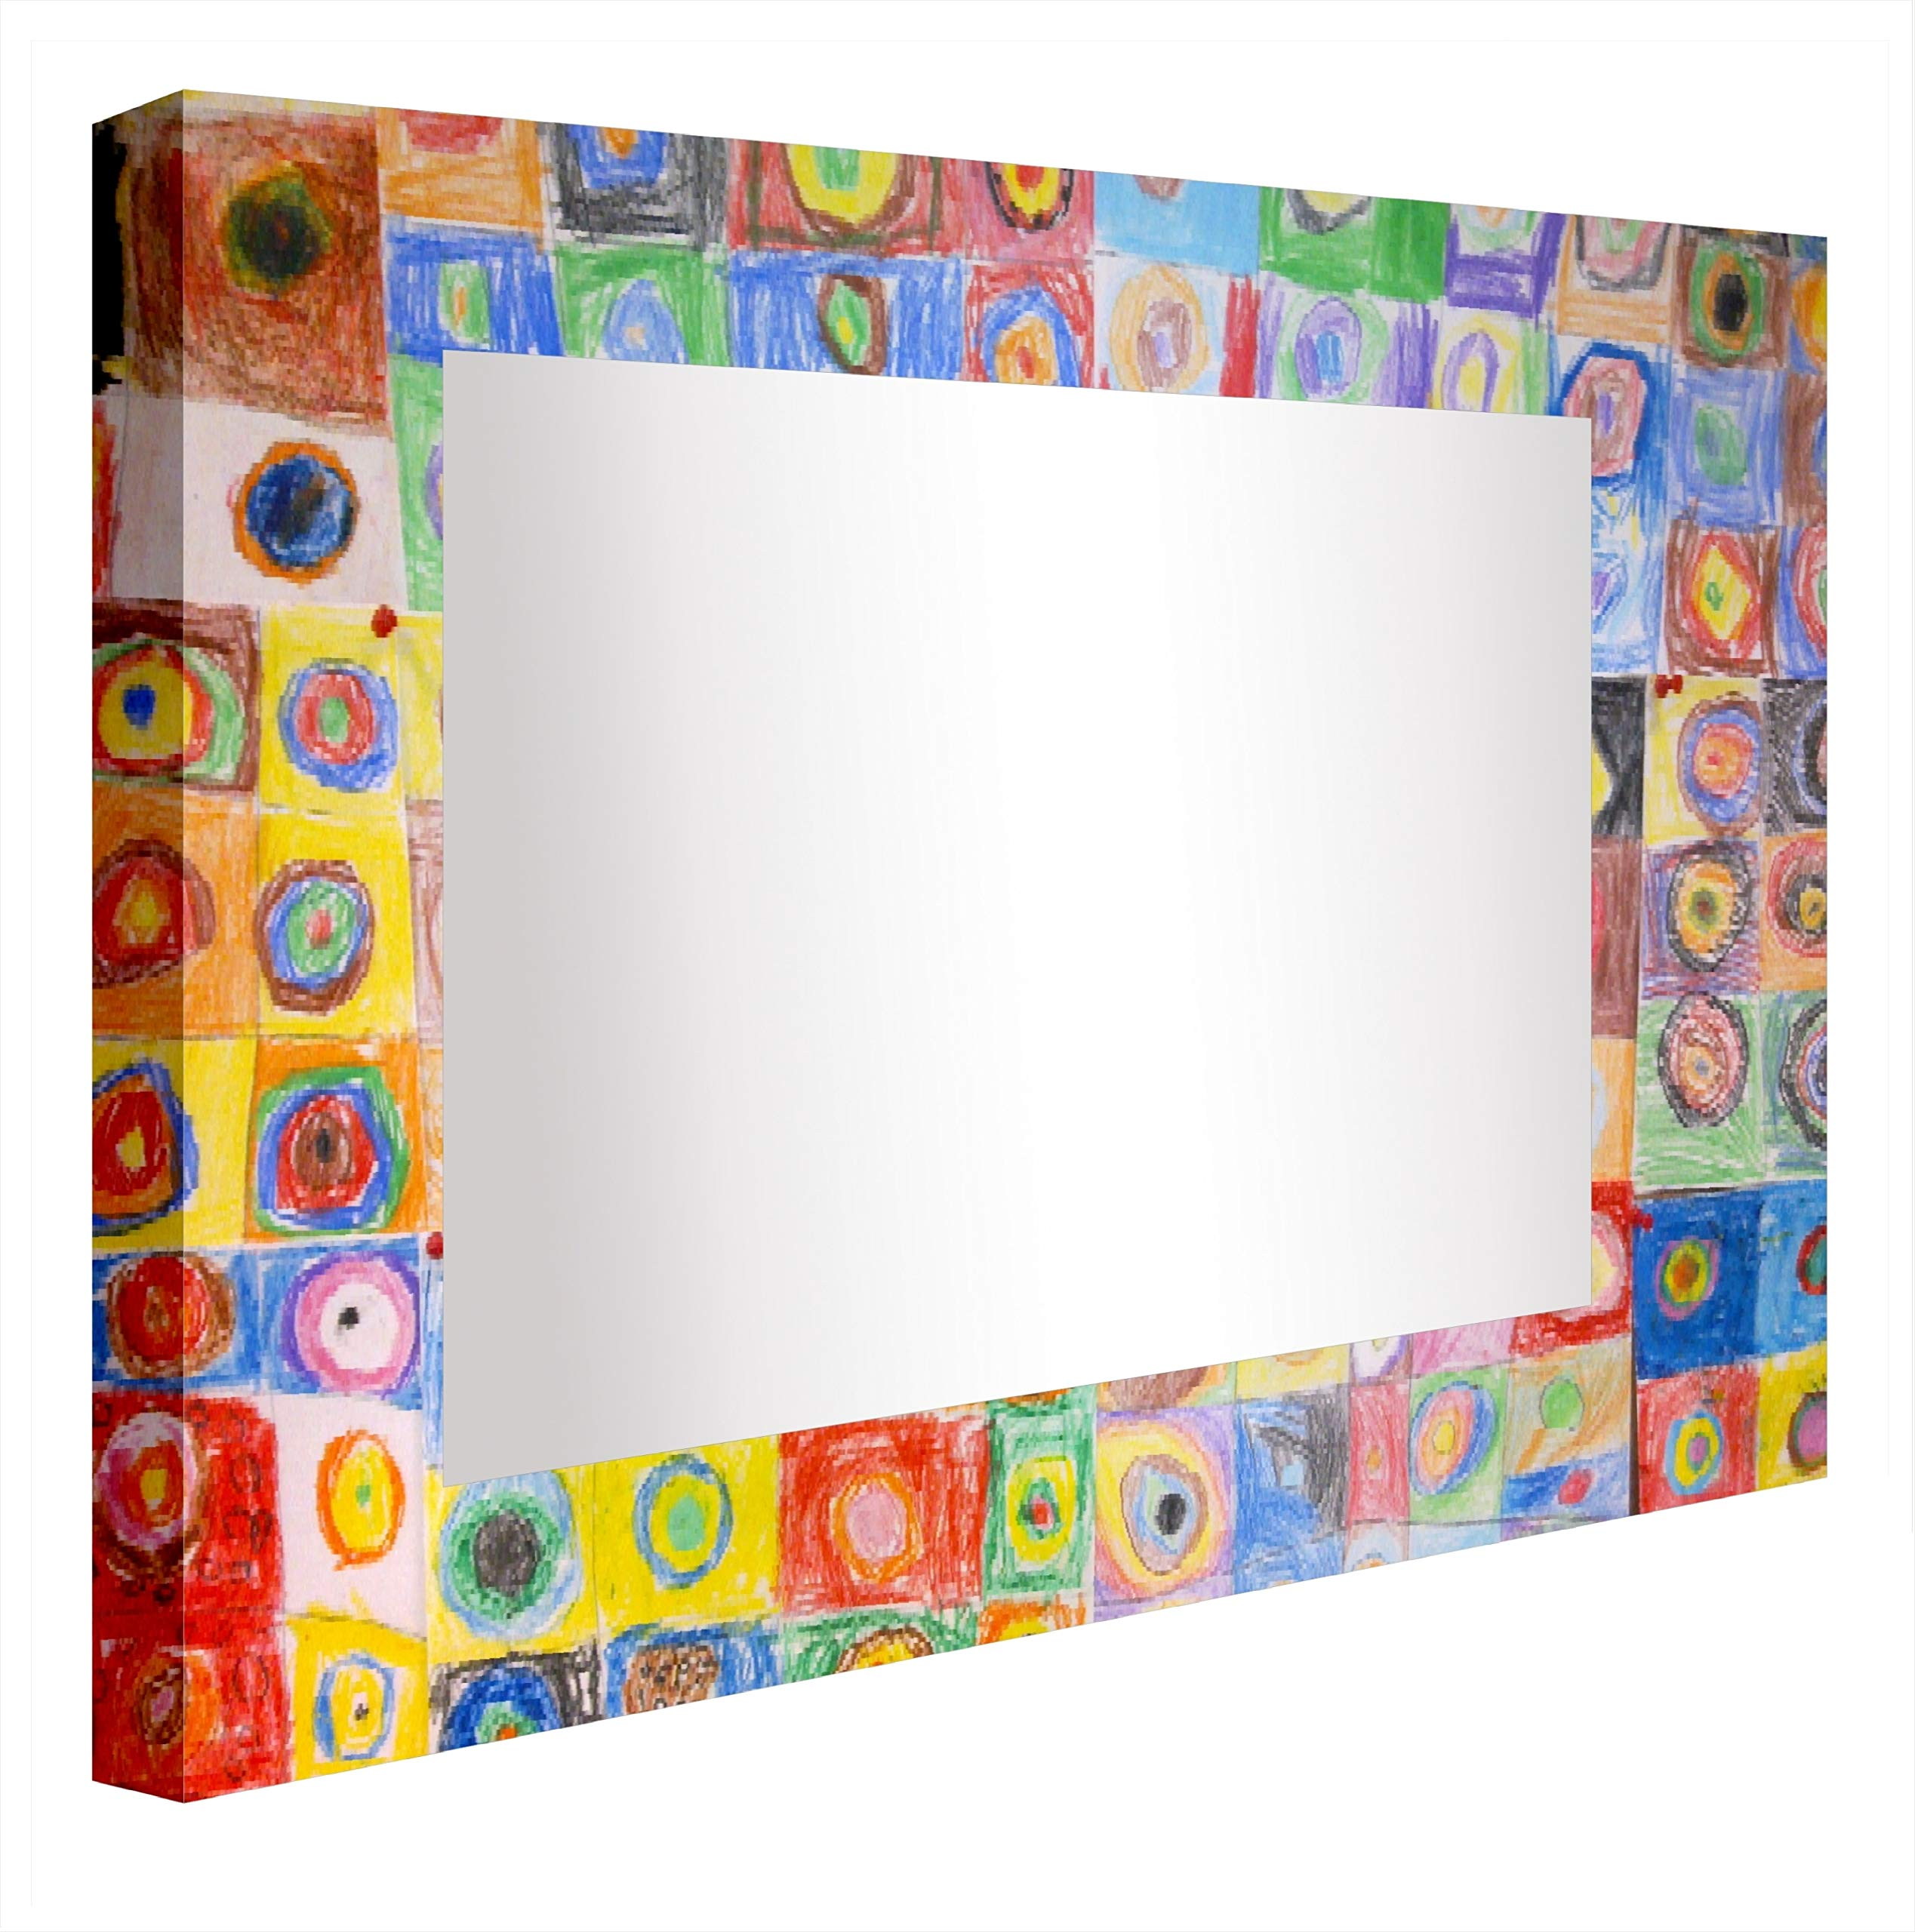 Ccretroiluminados Kandinsky Illuminated Bathroom Mirror, Acrylic, Multicoloured, 60 x 5.3 x 60 cm